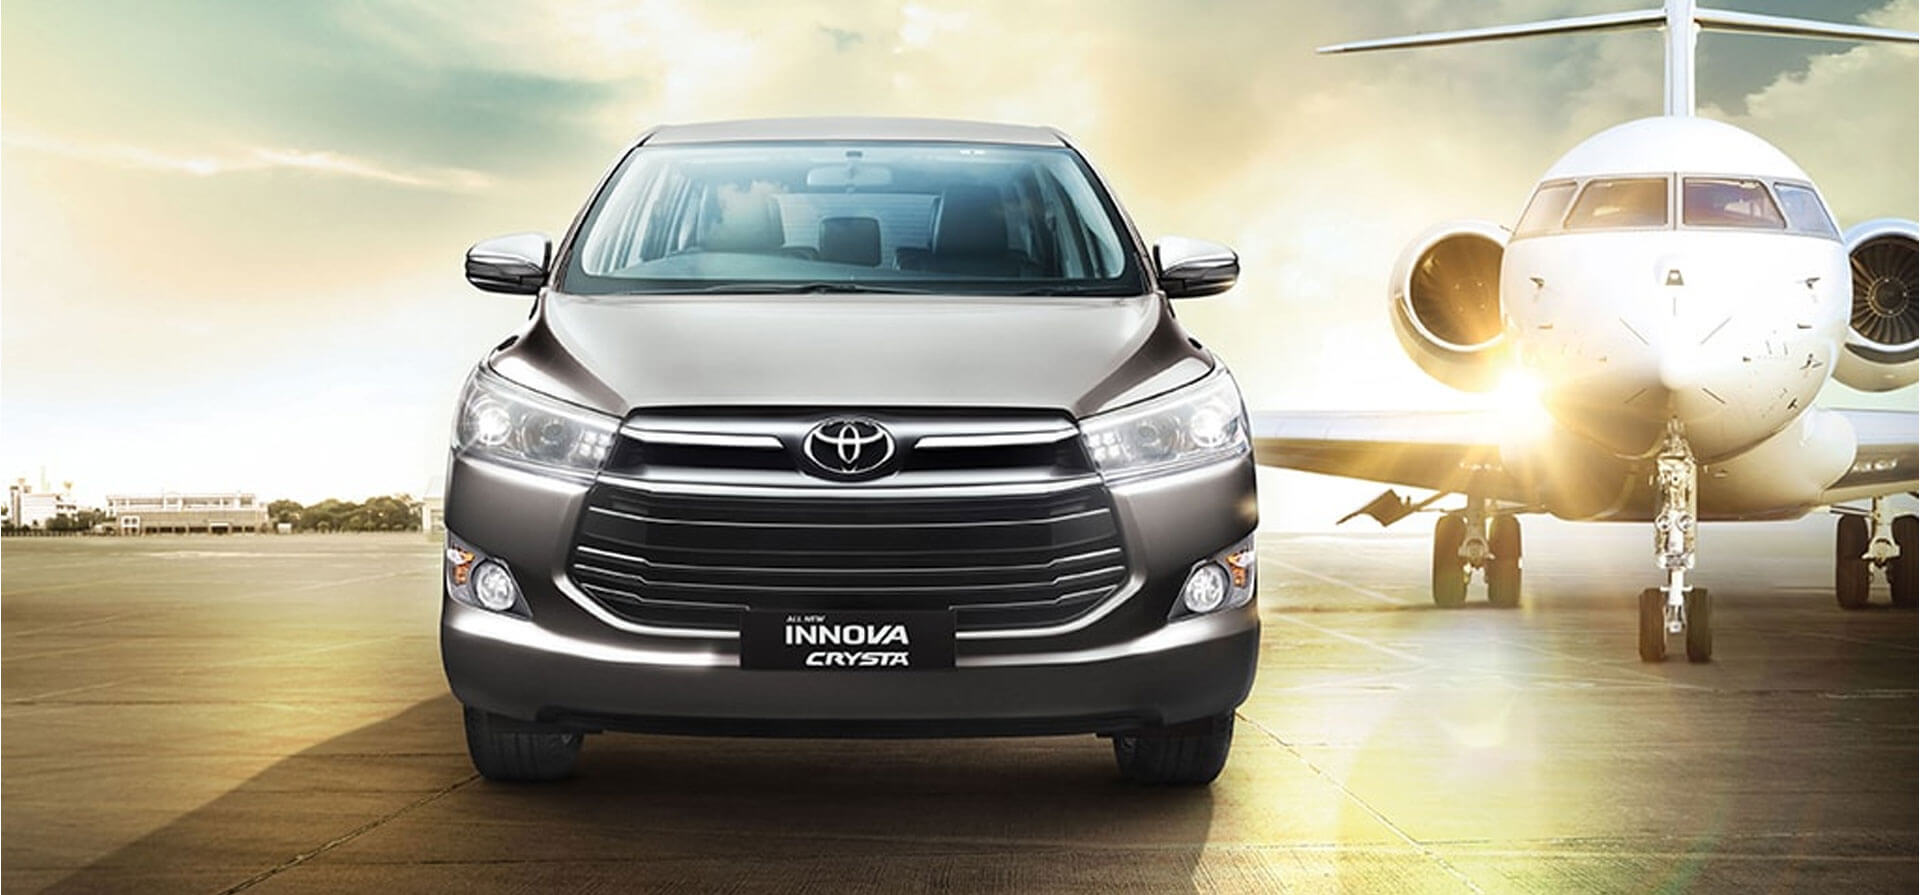 Toyota India | Official Toyota Innova Crysta site, Innova